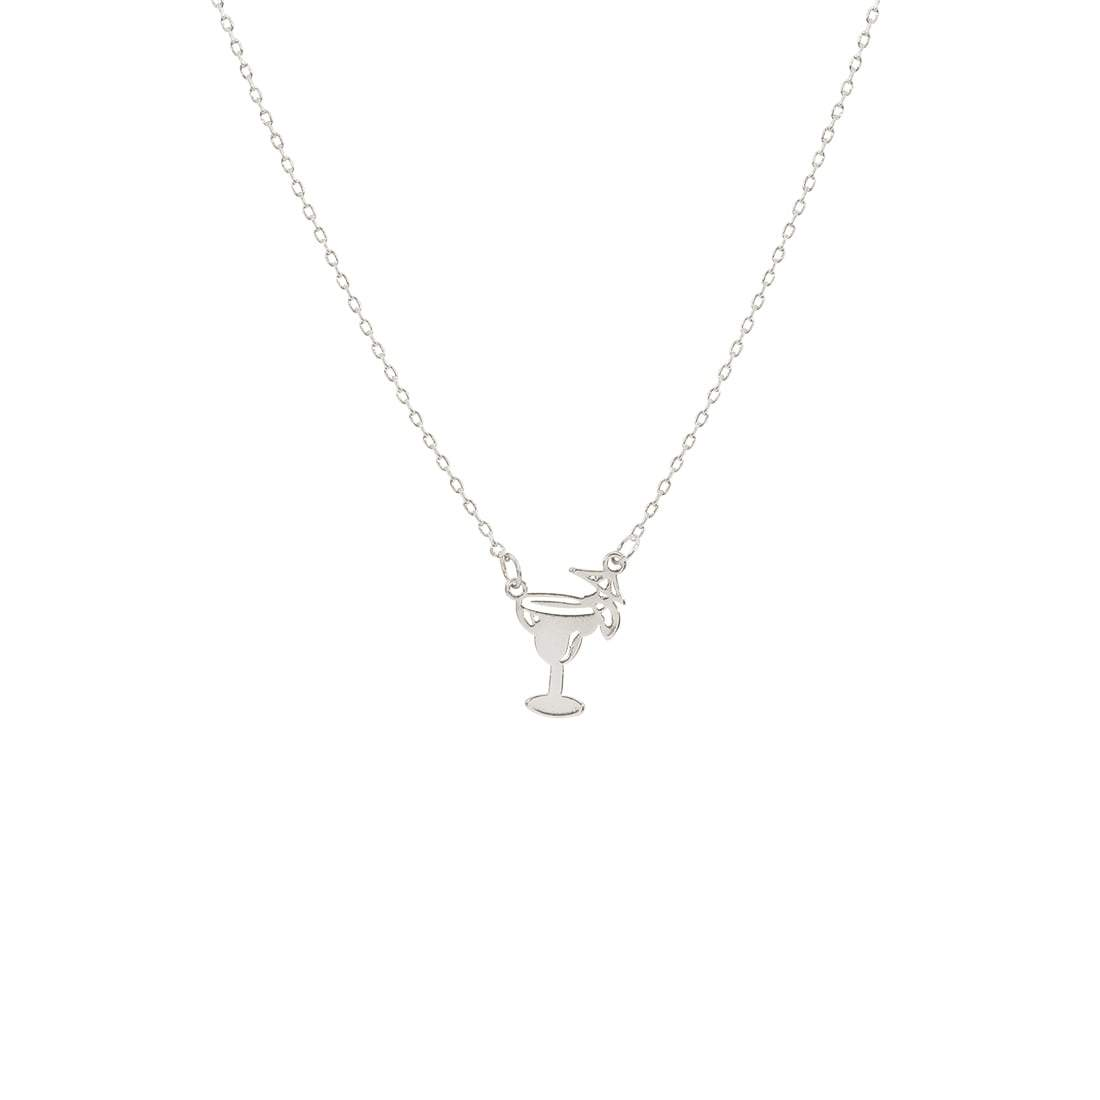 Silver Tropical Drink Necklace